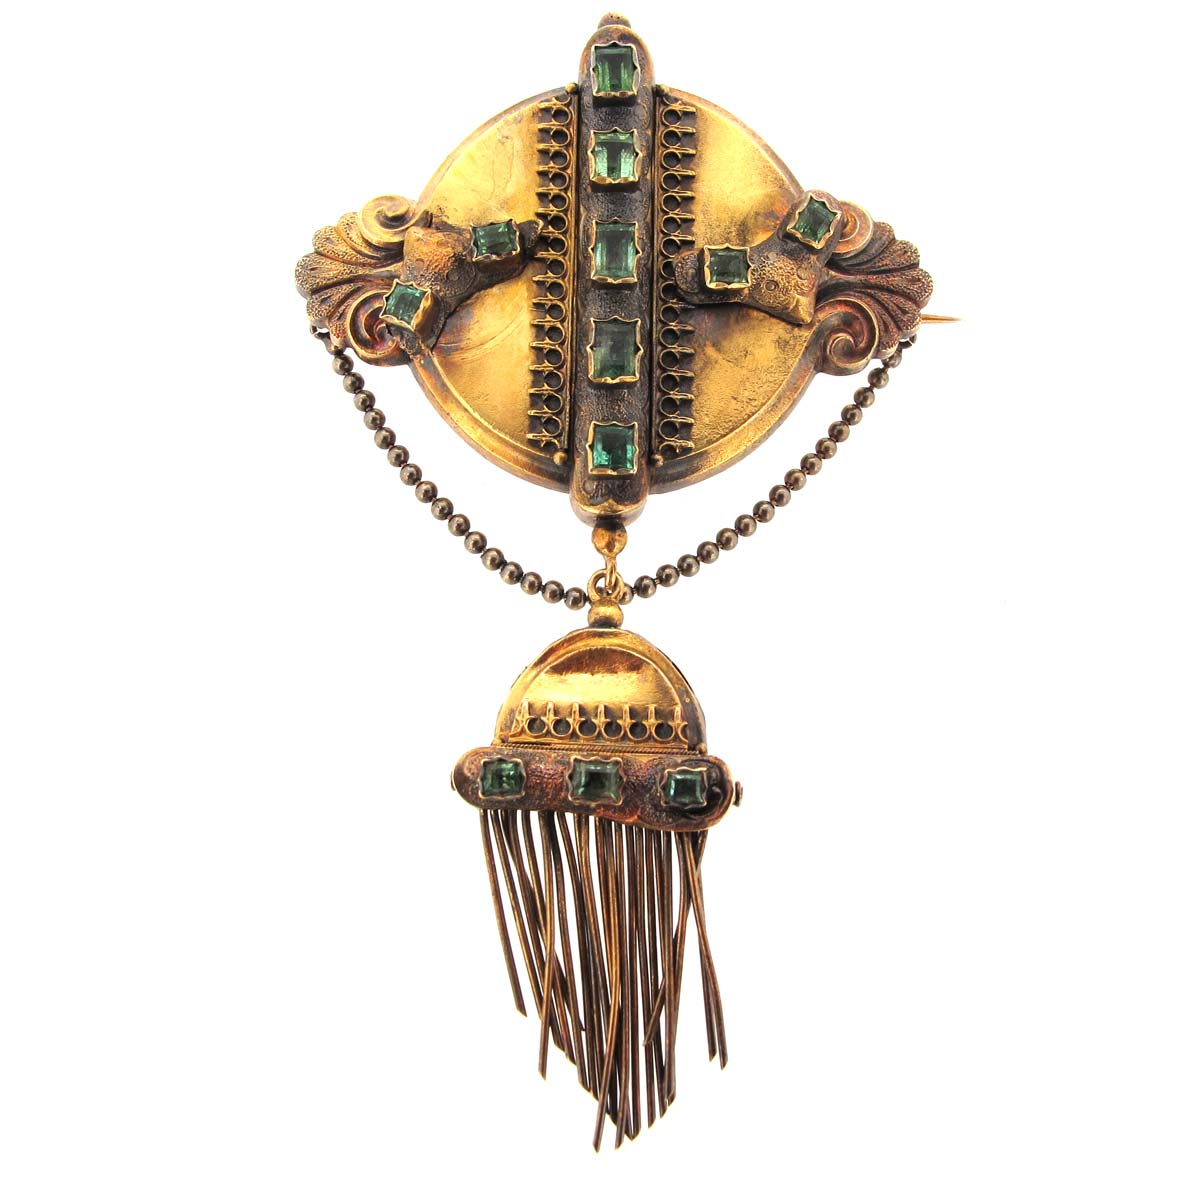 Antique Gold & Emerald Tassel Brooch